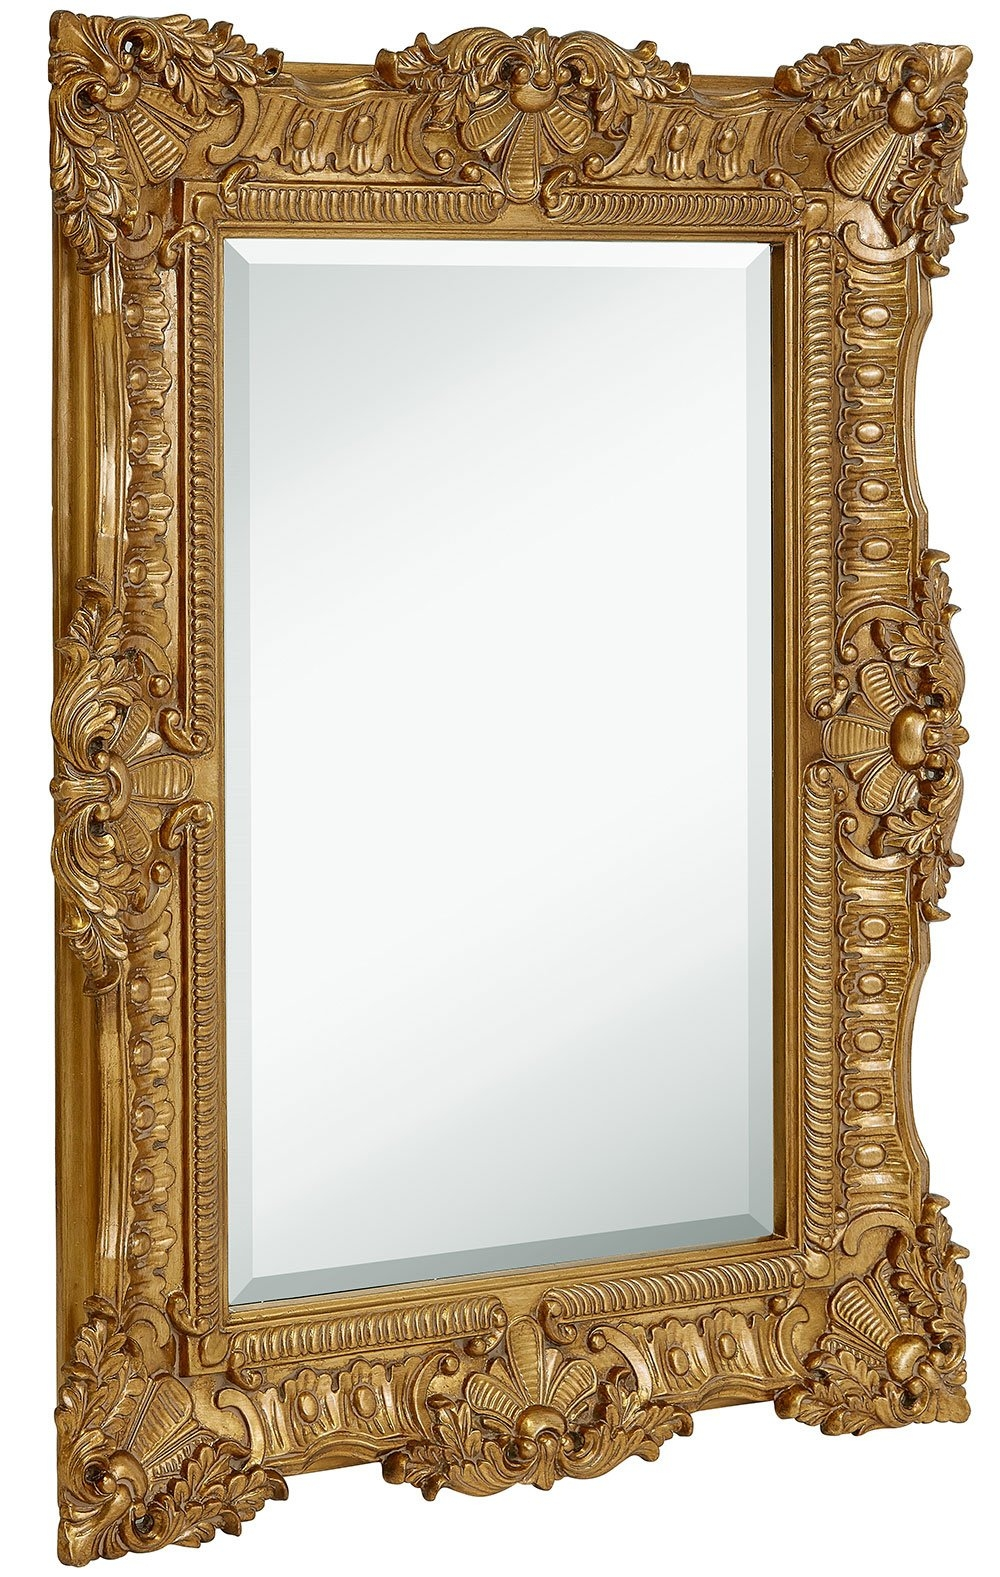 Best Deals On Gold Vintage Wall Mirrors Superoffers Inside Large Gold Ornate Mirror (View 13 of 15)